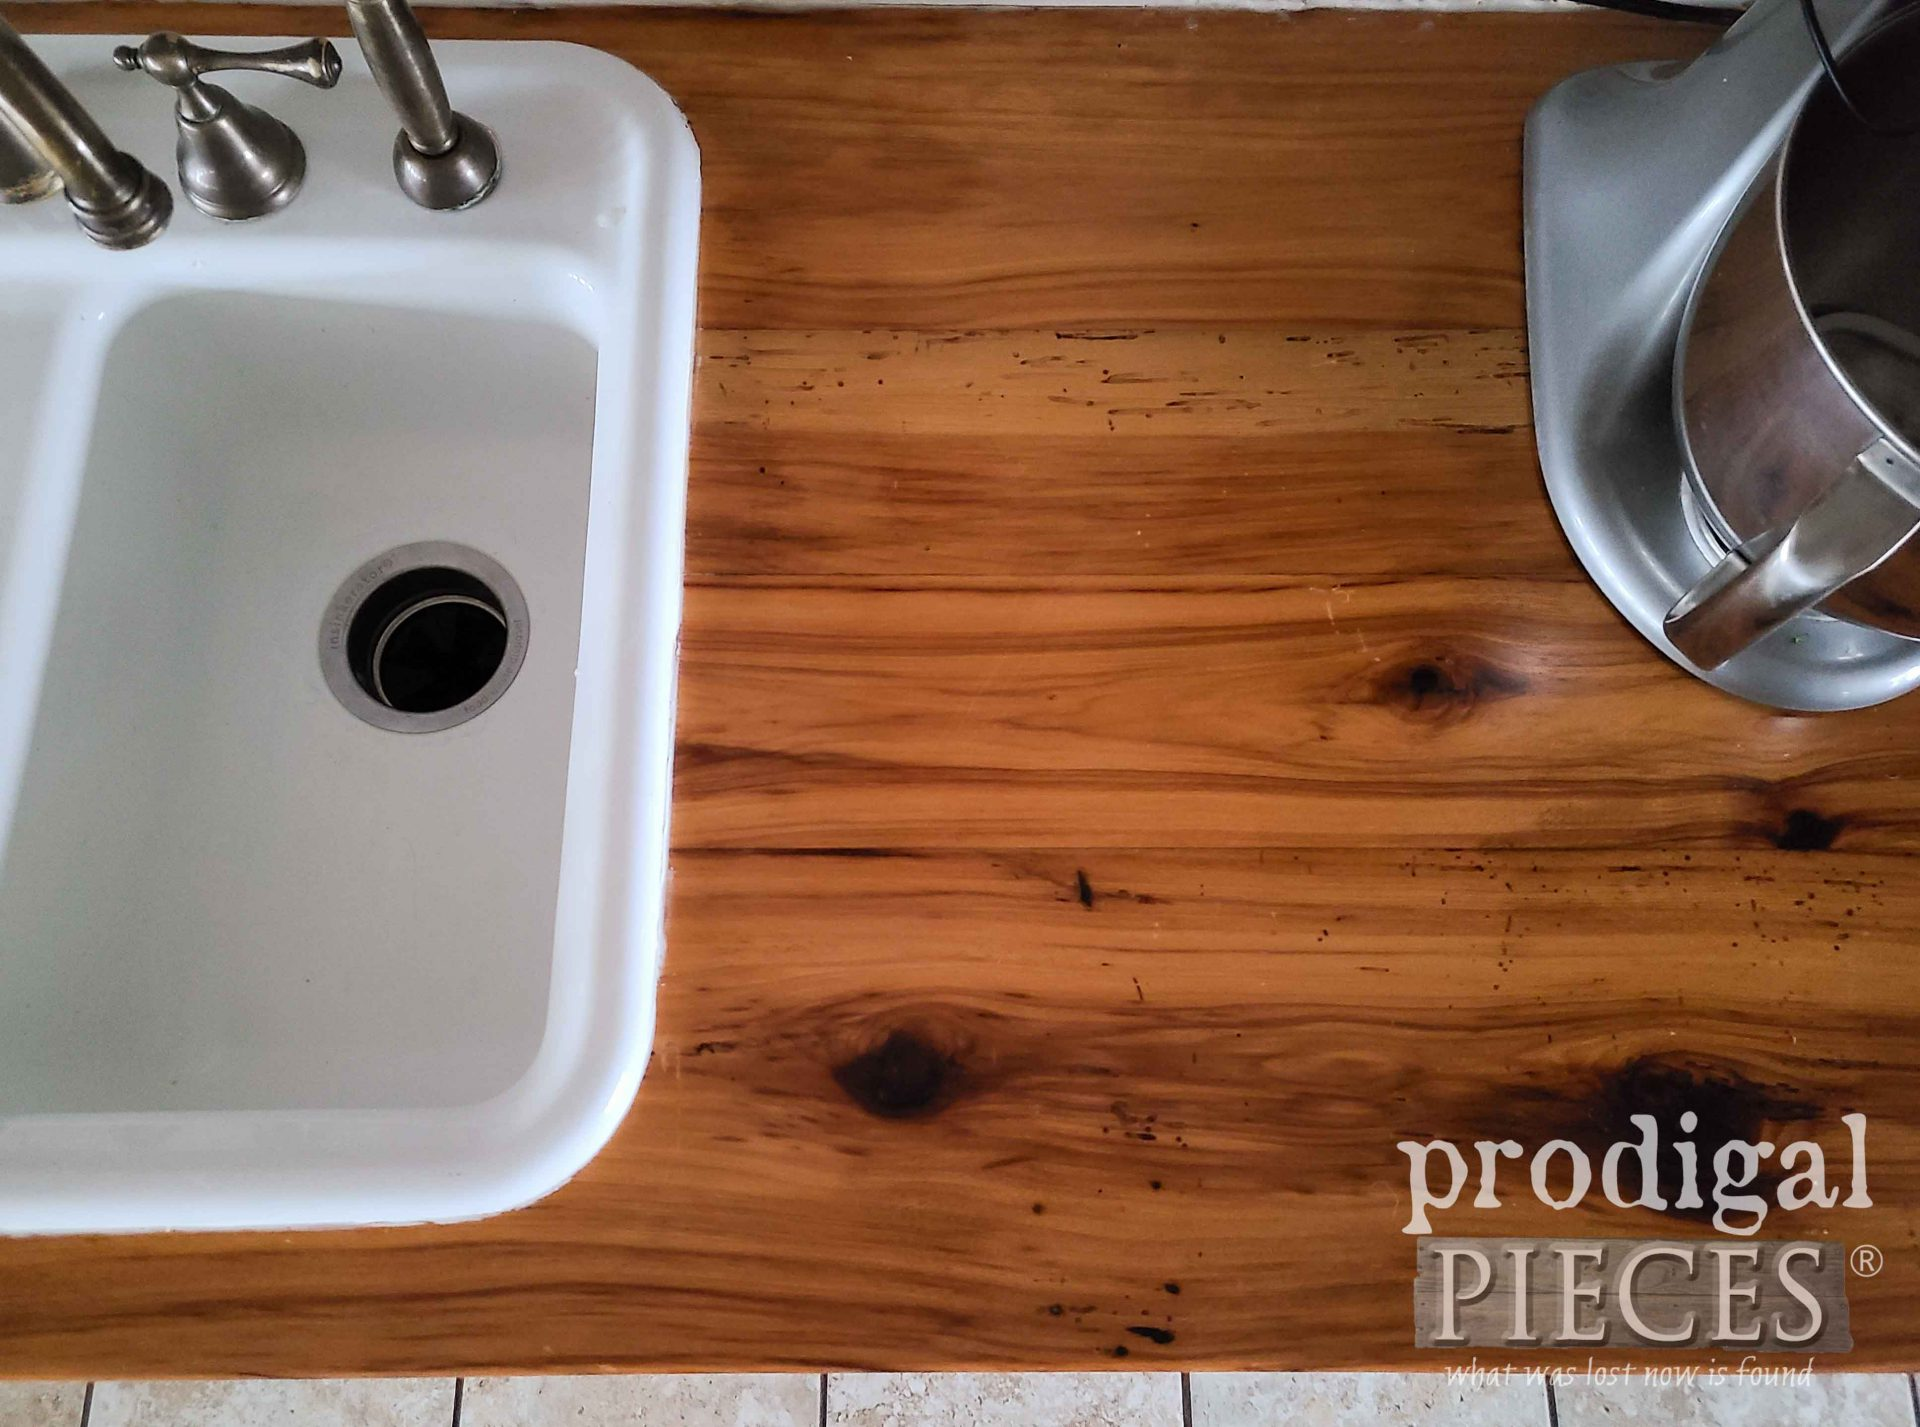 Farmhouse Kitchen Sink Side Counter | Prodigal Pieces | prodigalpieces.com #prodigalpieces #diy #kitchen #home #homedecor